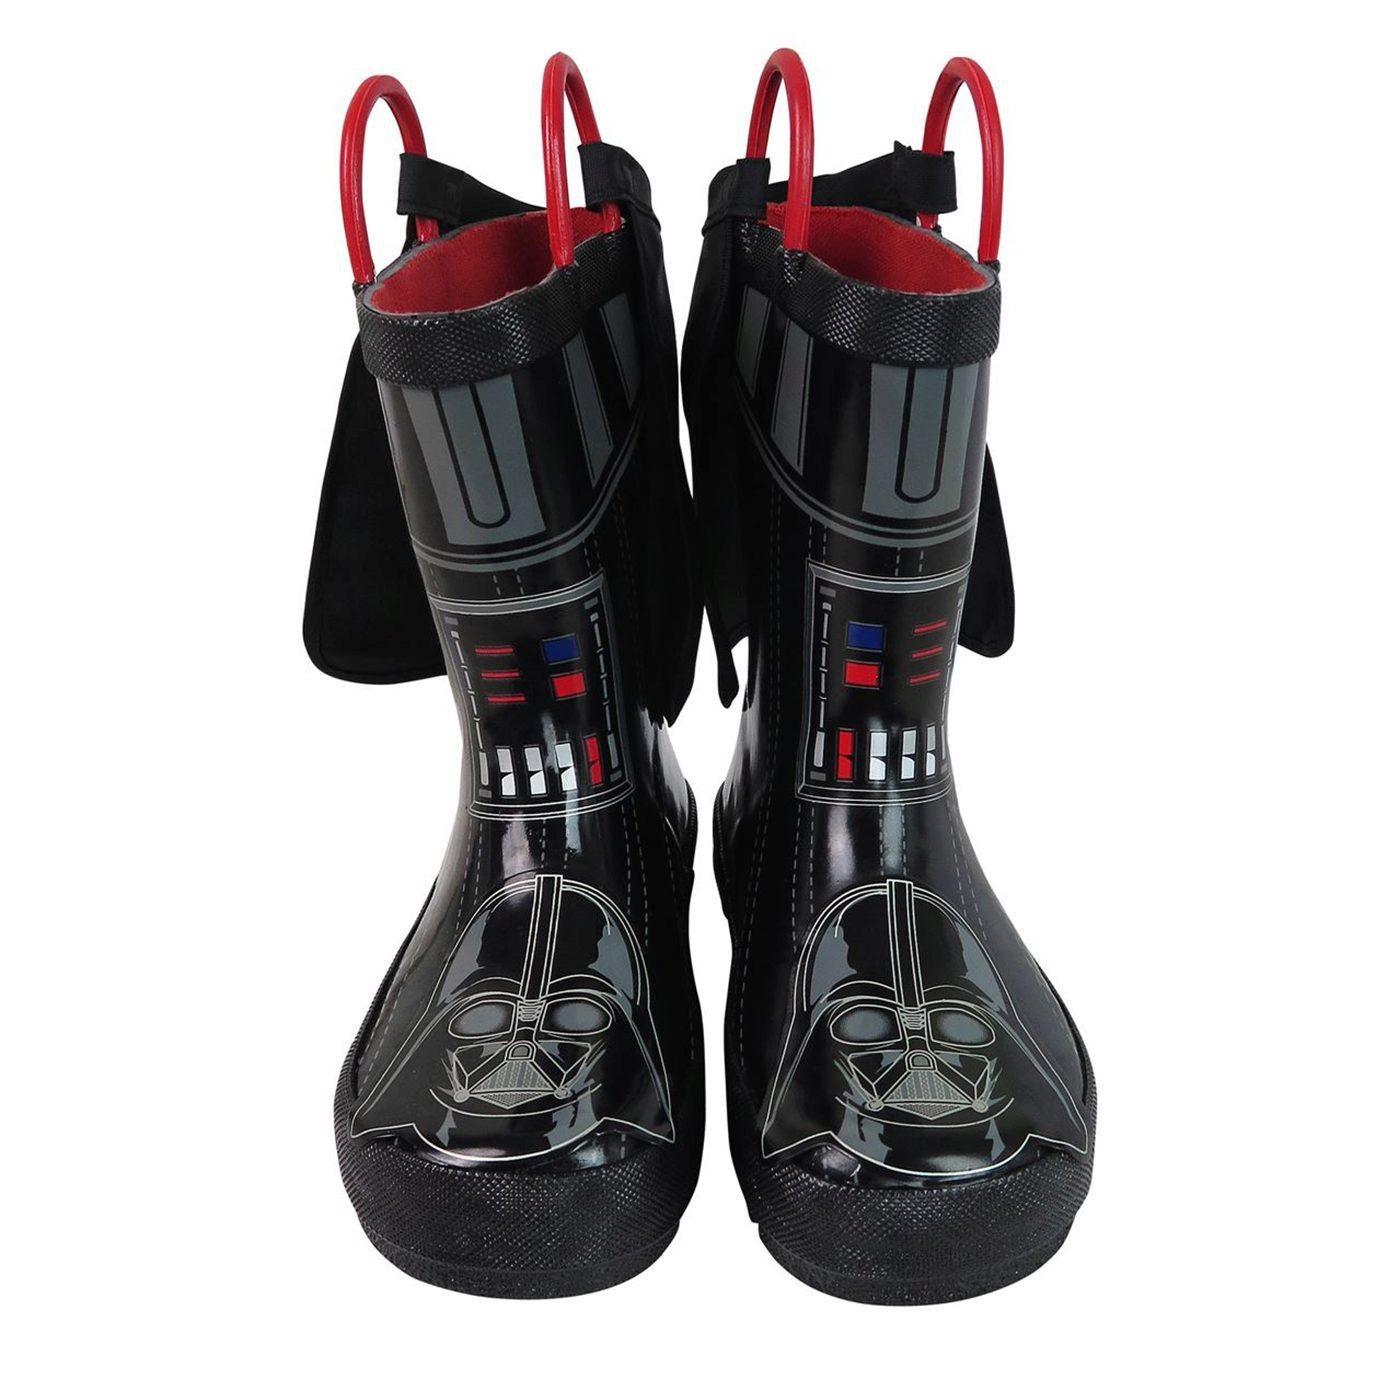 Star Wars Darth Vader Kids Rain Boots